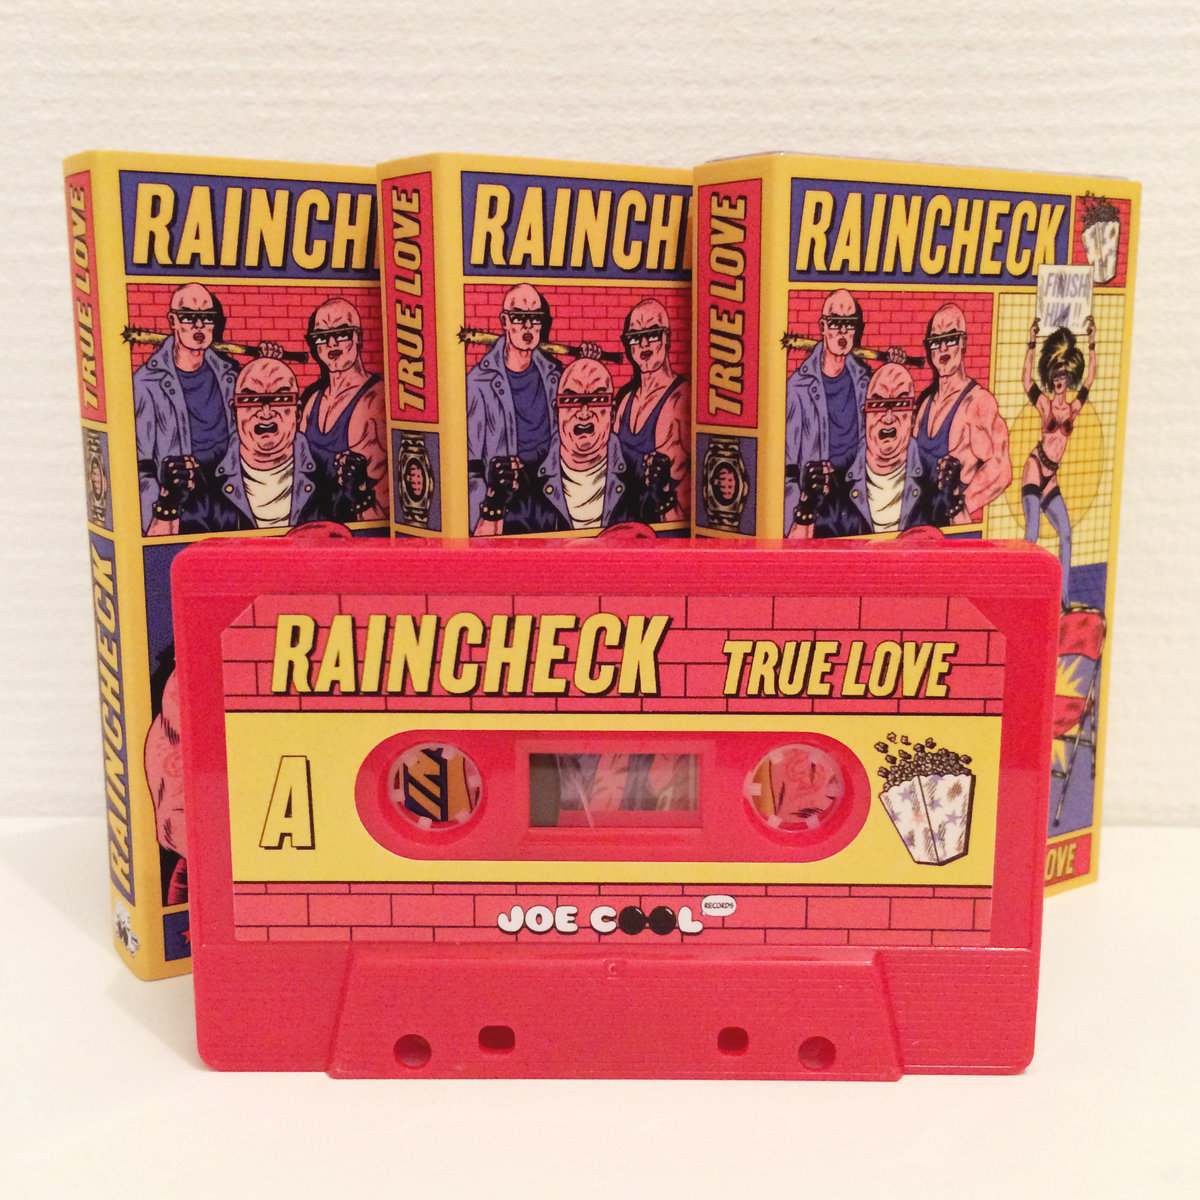 Raincheck - true love